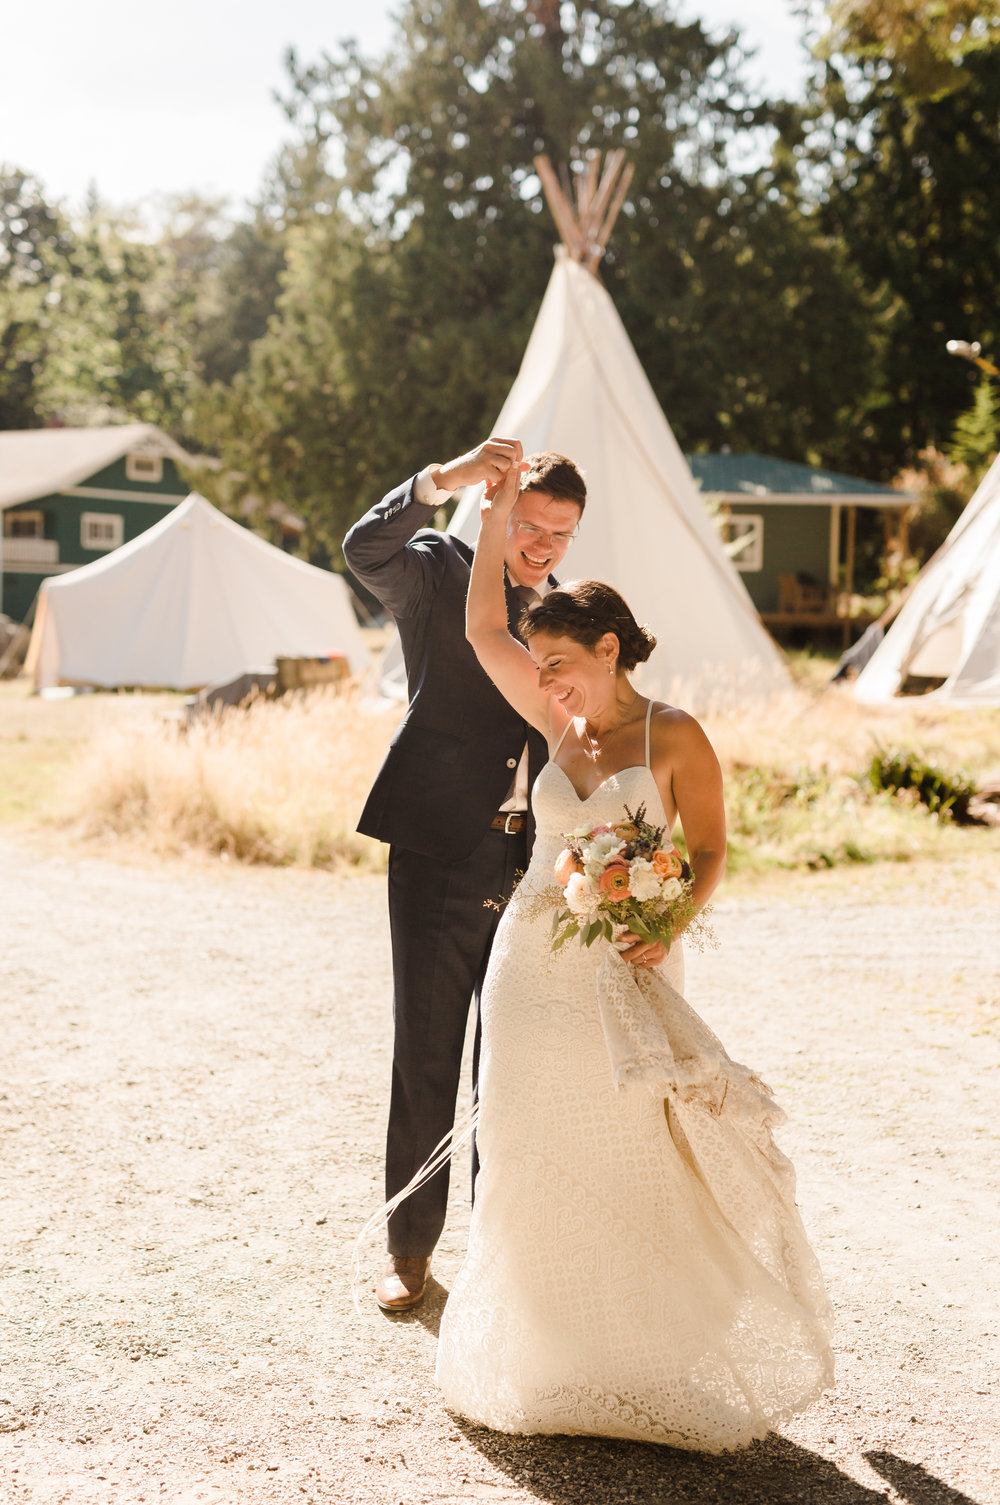 Camp Fircom Wedding - Vancouver Wedding Photographer & Videographer - Sunshine Coast Wedding Photos - Sunshine Coast Wedding Photographer - Jennifer Picard Photography - IMG_2160.jpg